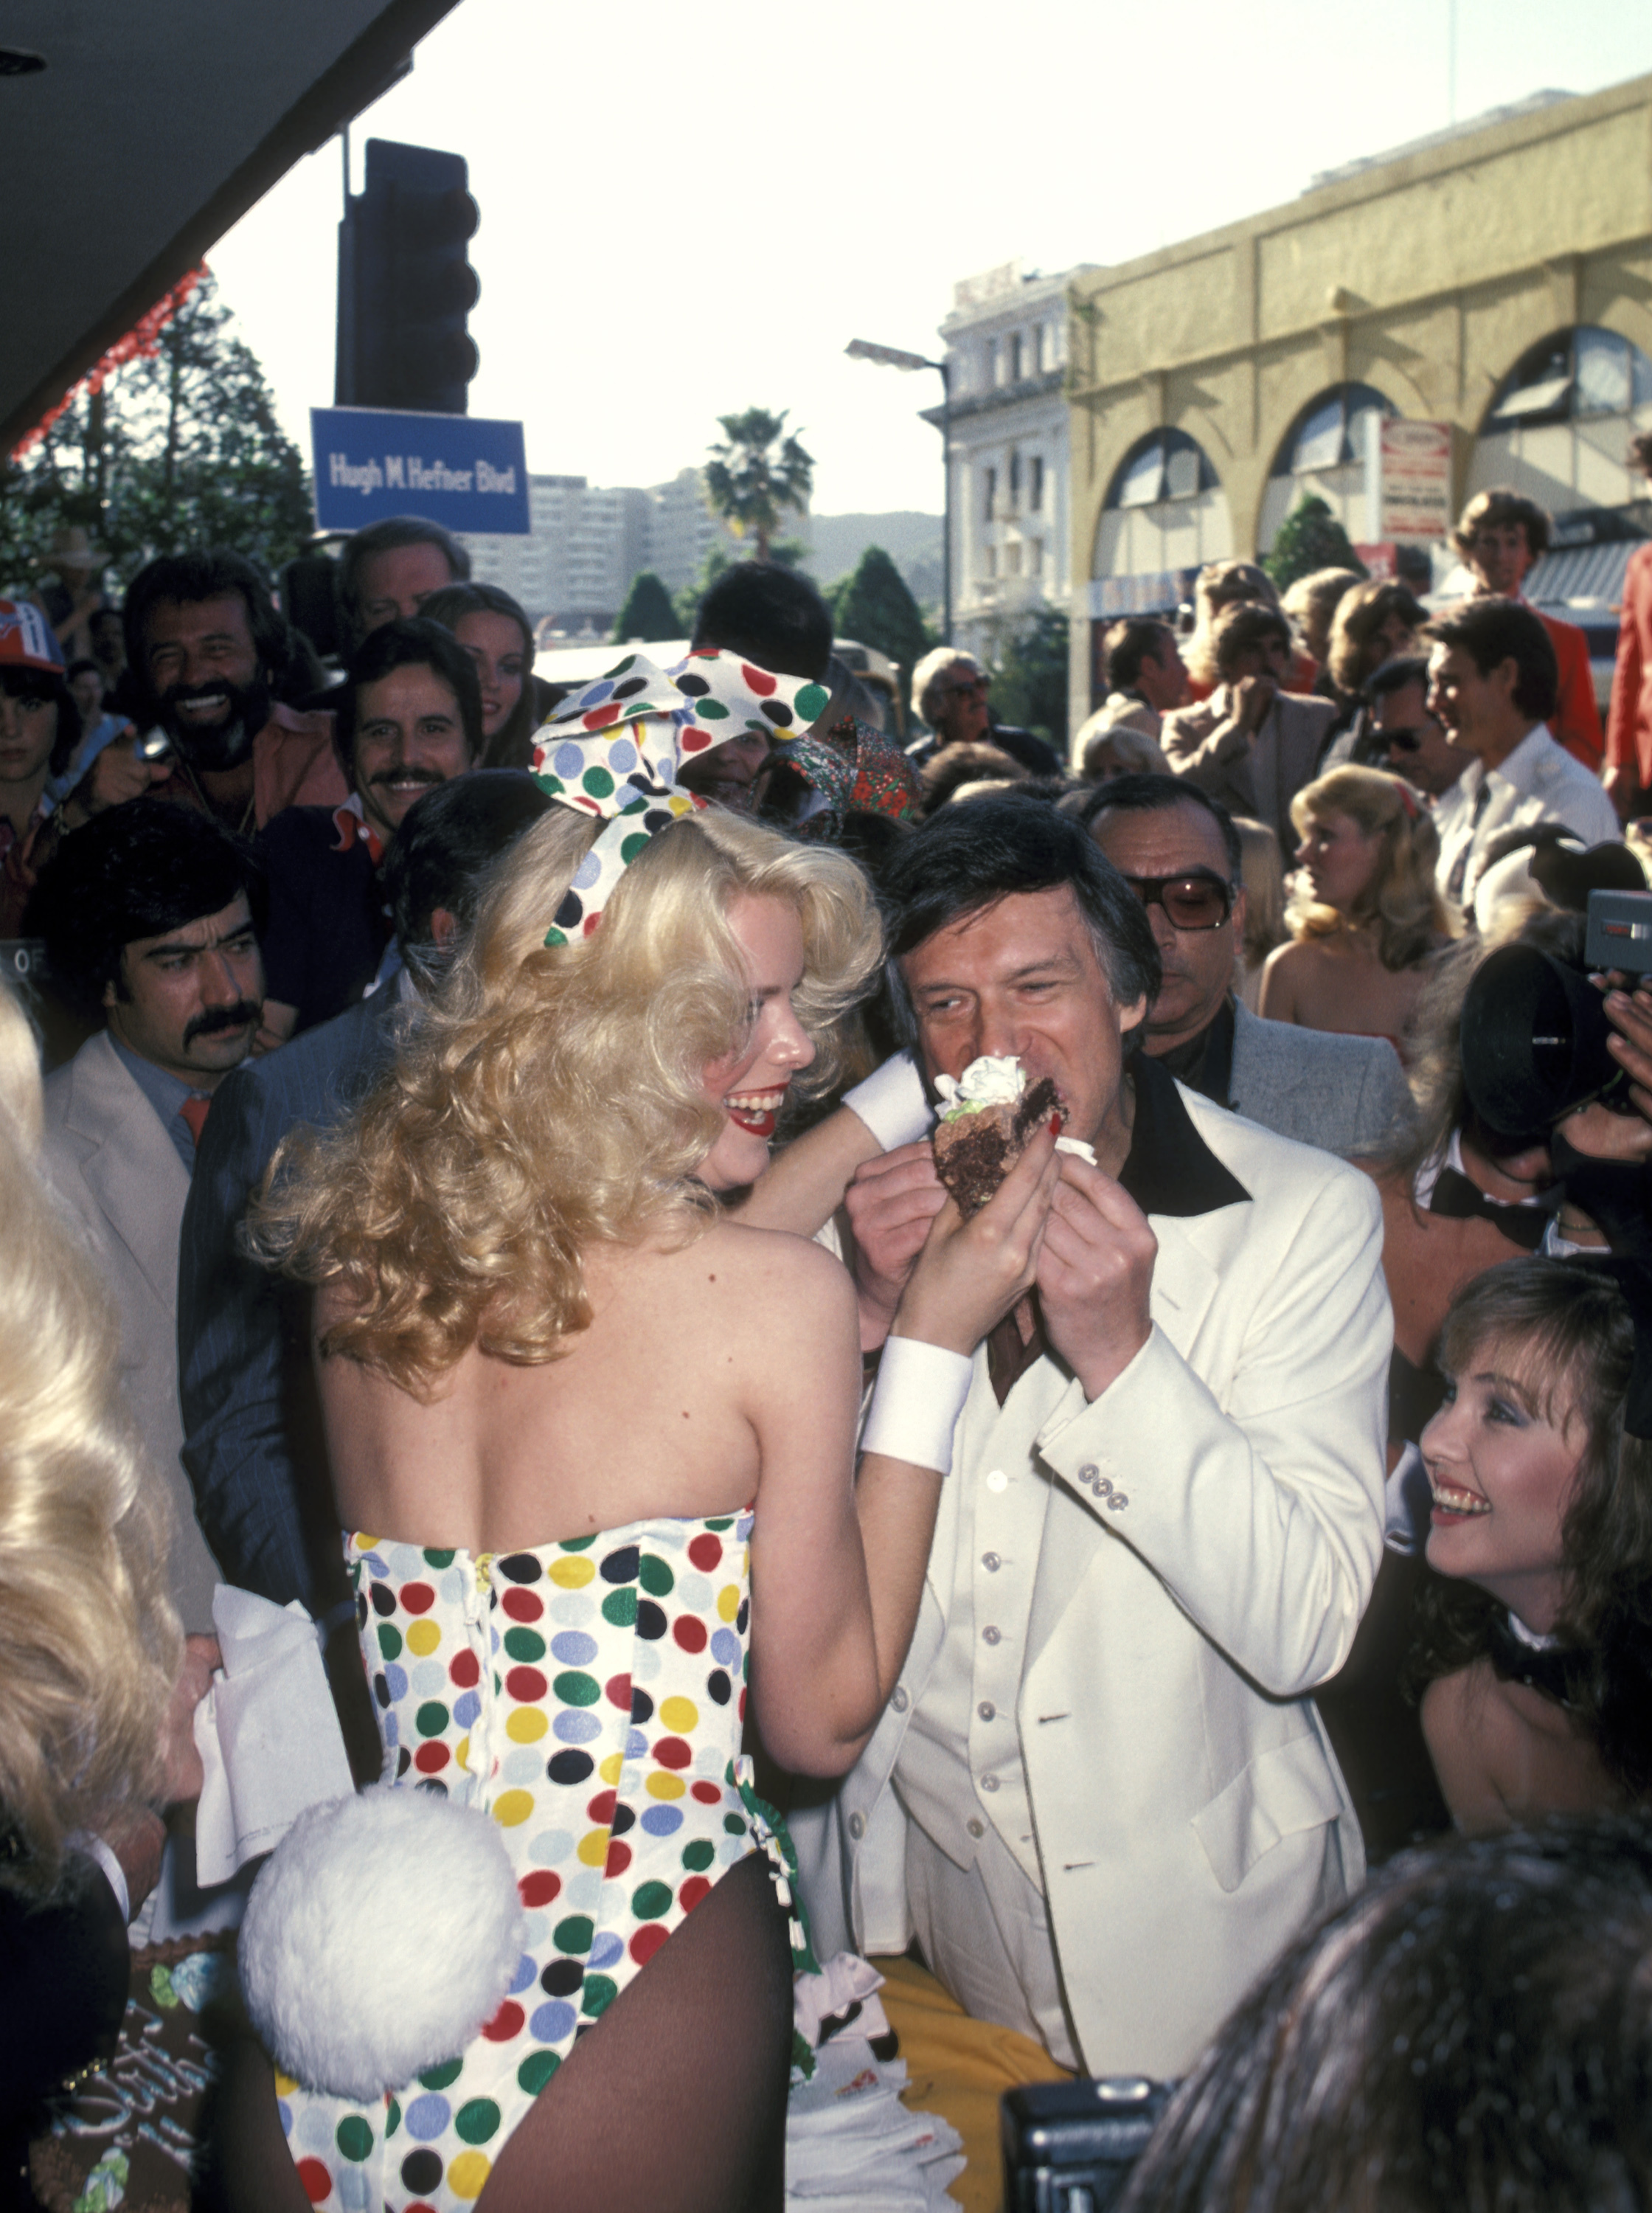 Hugh Hefner is feed a cupcake from a Playboy bunny while being honored with a star on the Hollywood Walk of Fame in Hollywood, California on April 9, 1980.